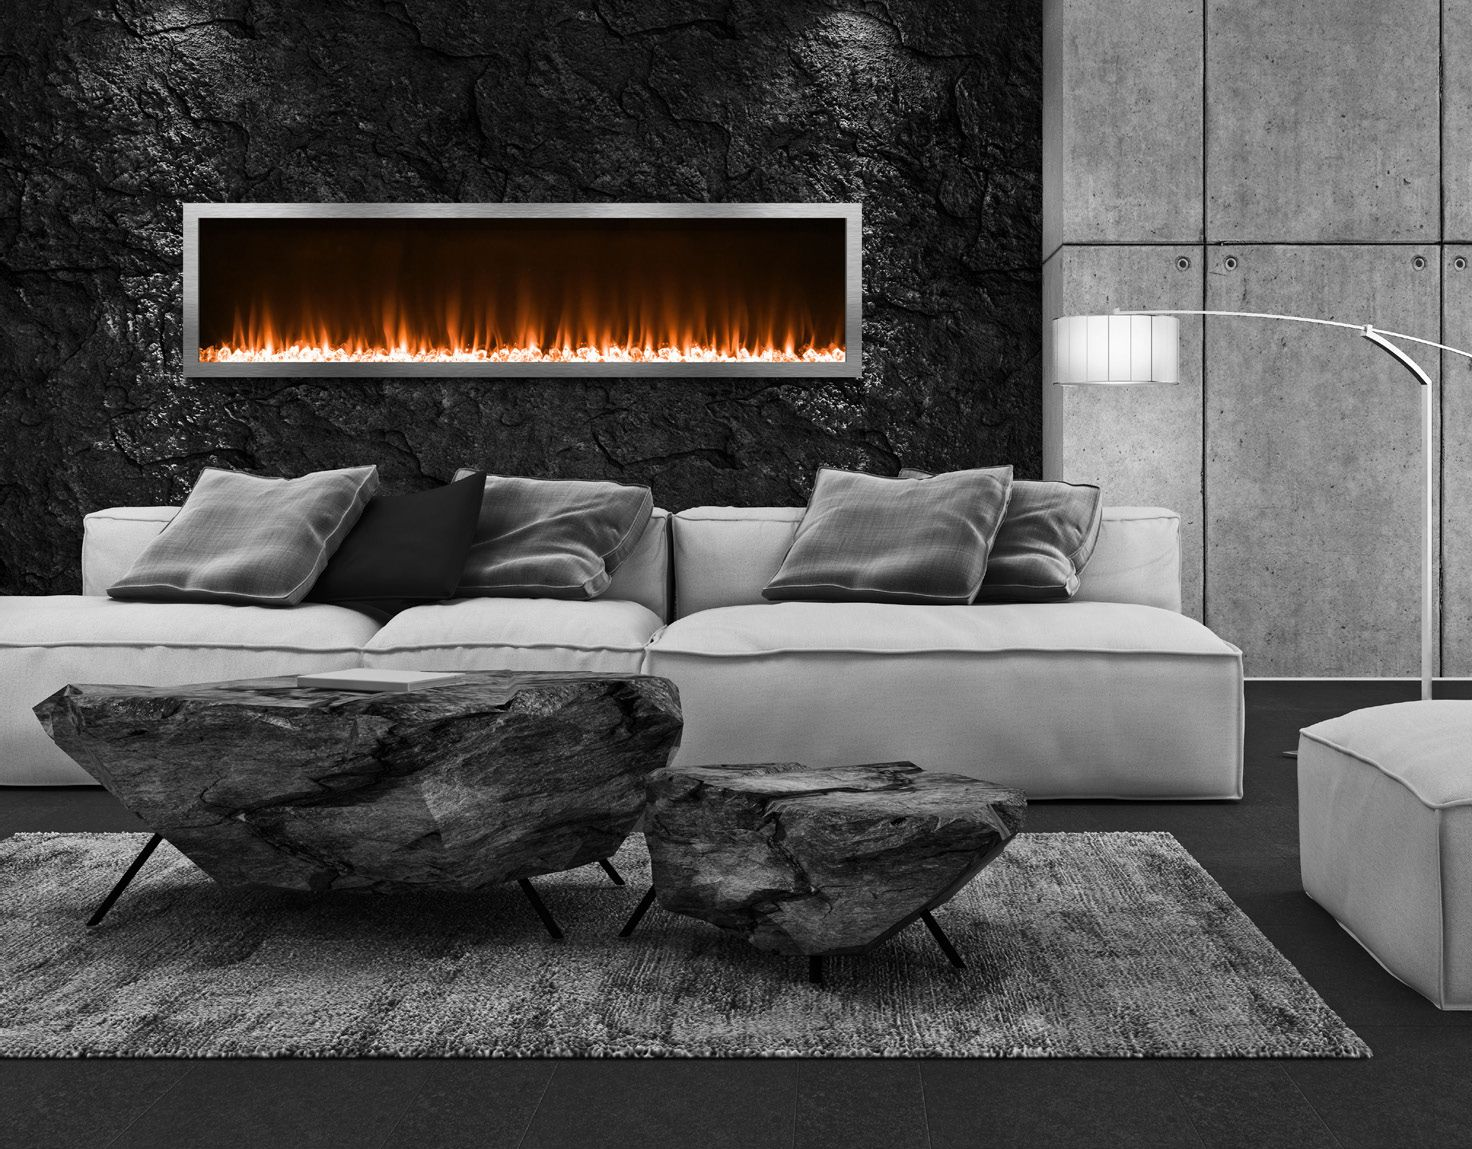 fireplace in electric recessed touchstone the products home inc touchstones heat with wide sideline black